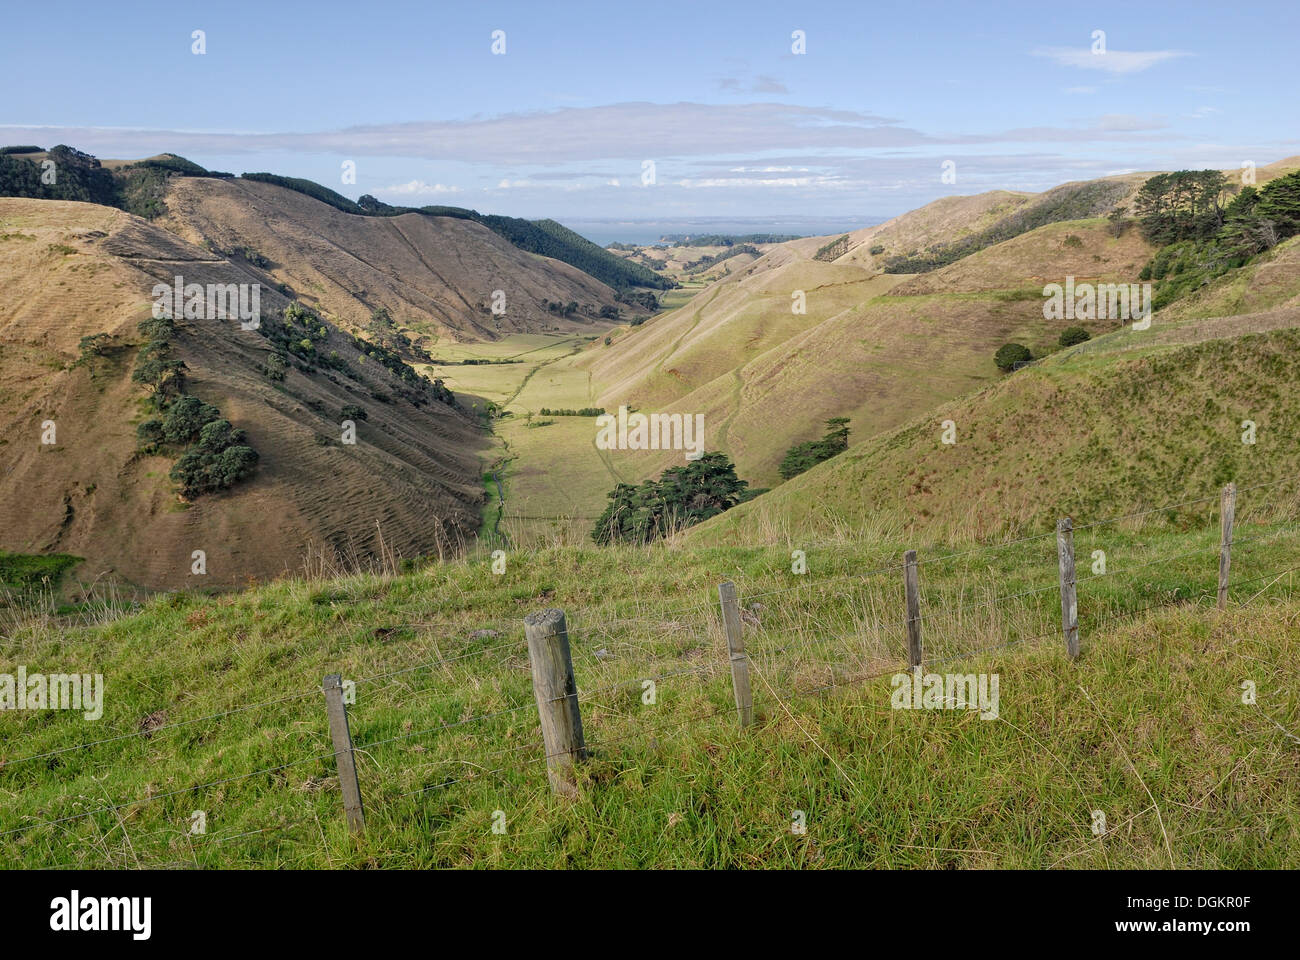 Valley and pastures on the Lees Gully Road, Manukau Peninsula, North Island, New Zealand - Stock Image